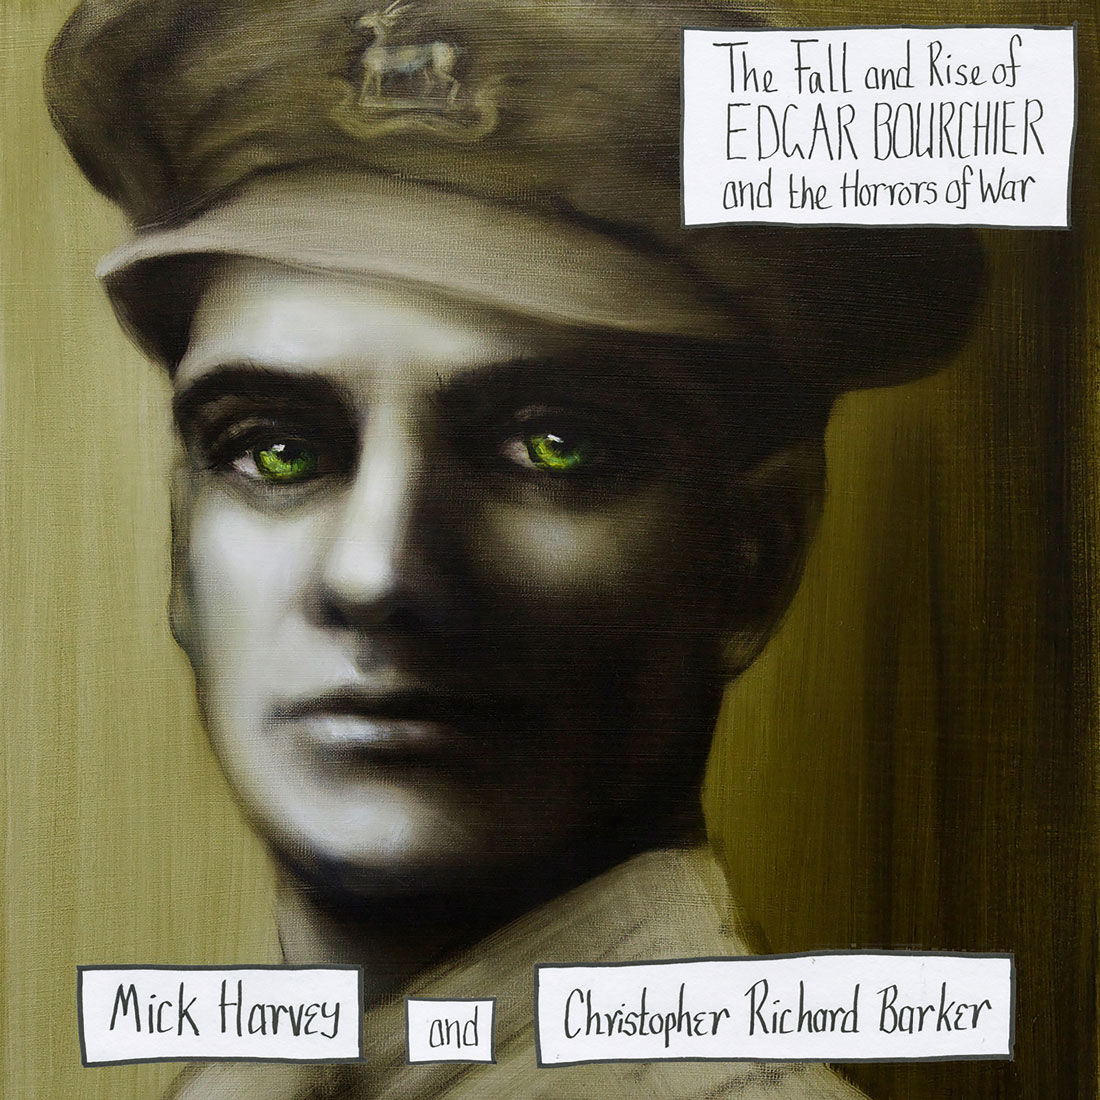 Mick Harvey & Christopher Richard Barker – The Lost Bastard Son Of War